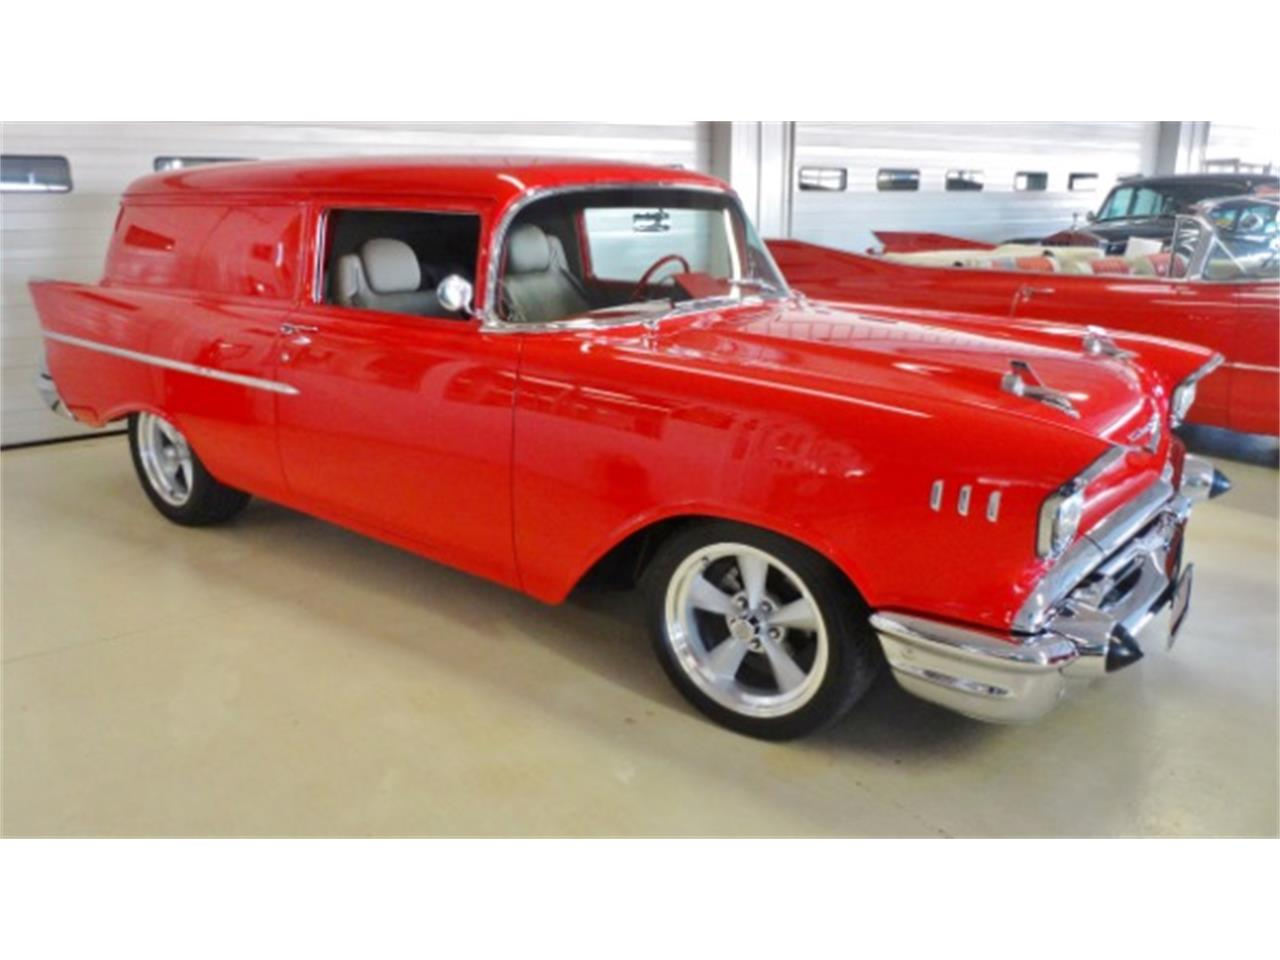 1957 Chevrolet Sedan Delivery For Sale Classiccars Com